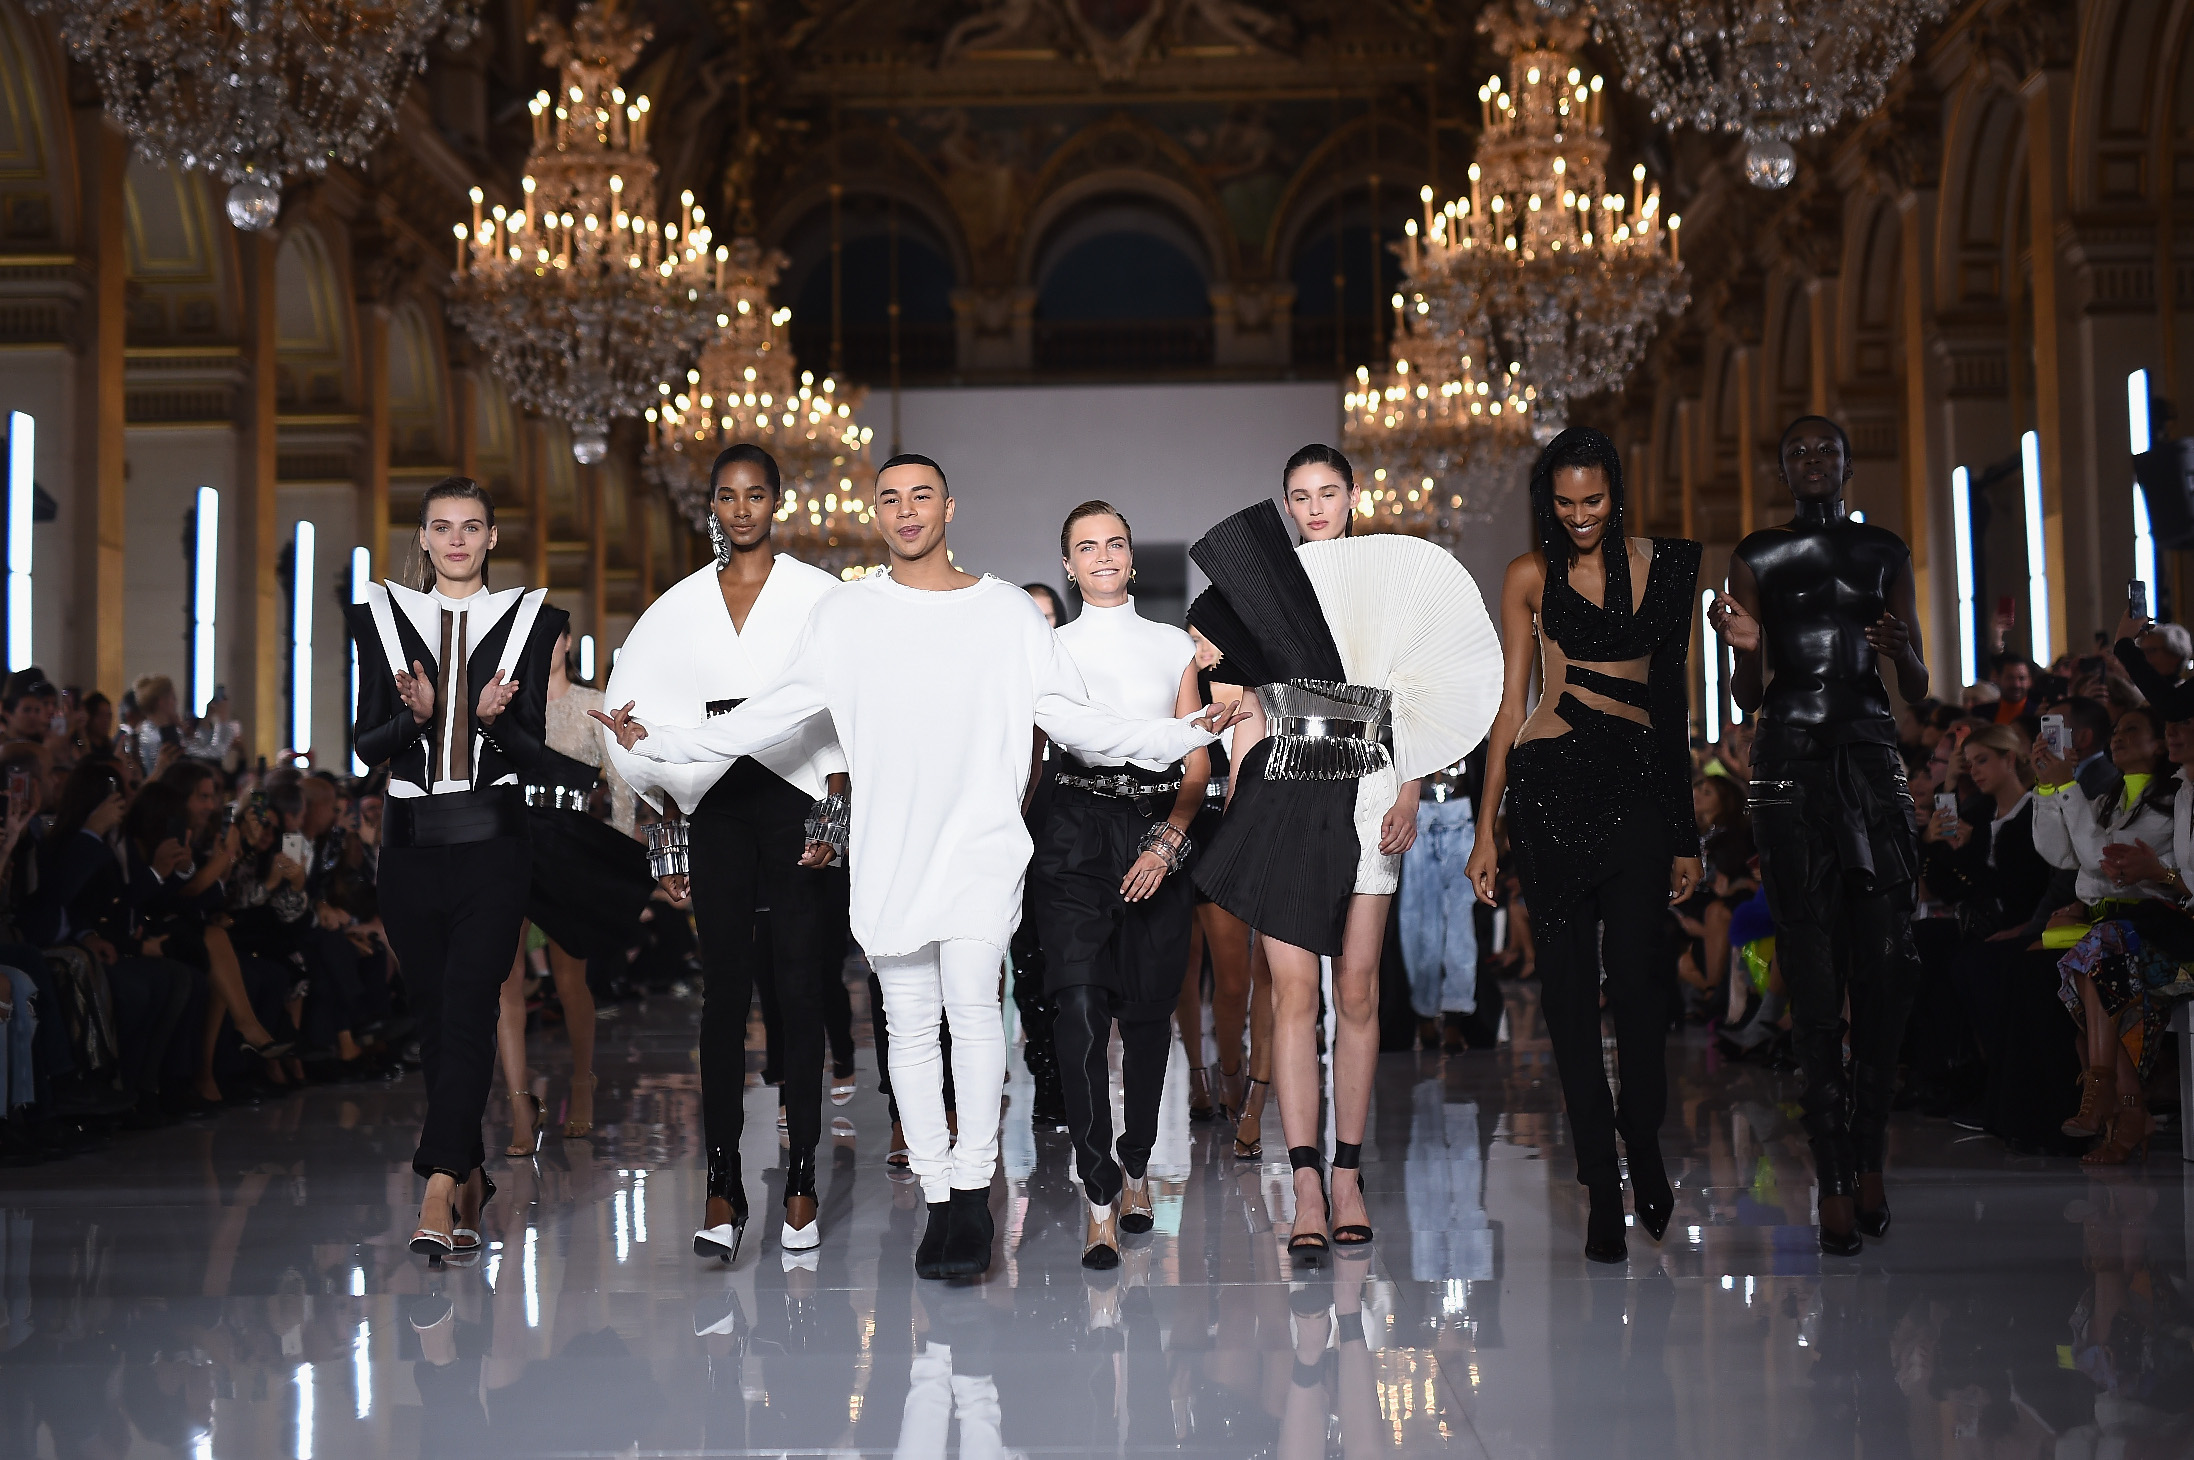 PARIS, FRANCE - SEPTEMBER 28:  Olivier Rousteing (C) is applauded on the runway during the Balmain show as part of the Paris Fashion Week Womenswear Spring/Summer 2019 on September 28, 2018 in Paris, France.  (Photo by Pascal Le Segretain/Getty Images)